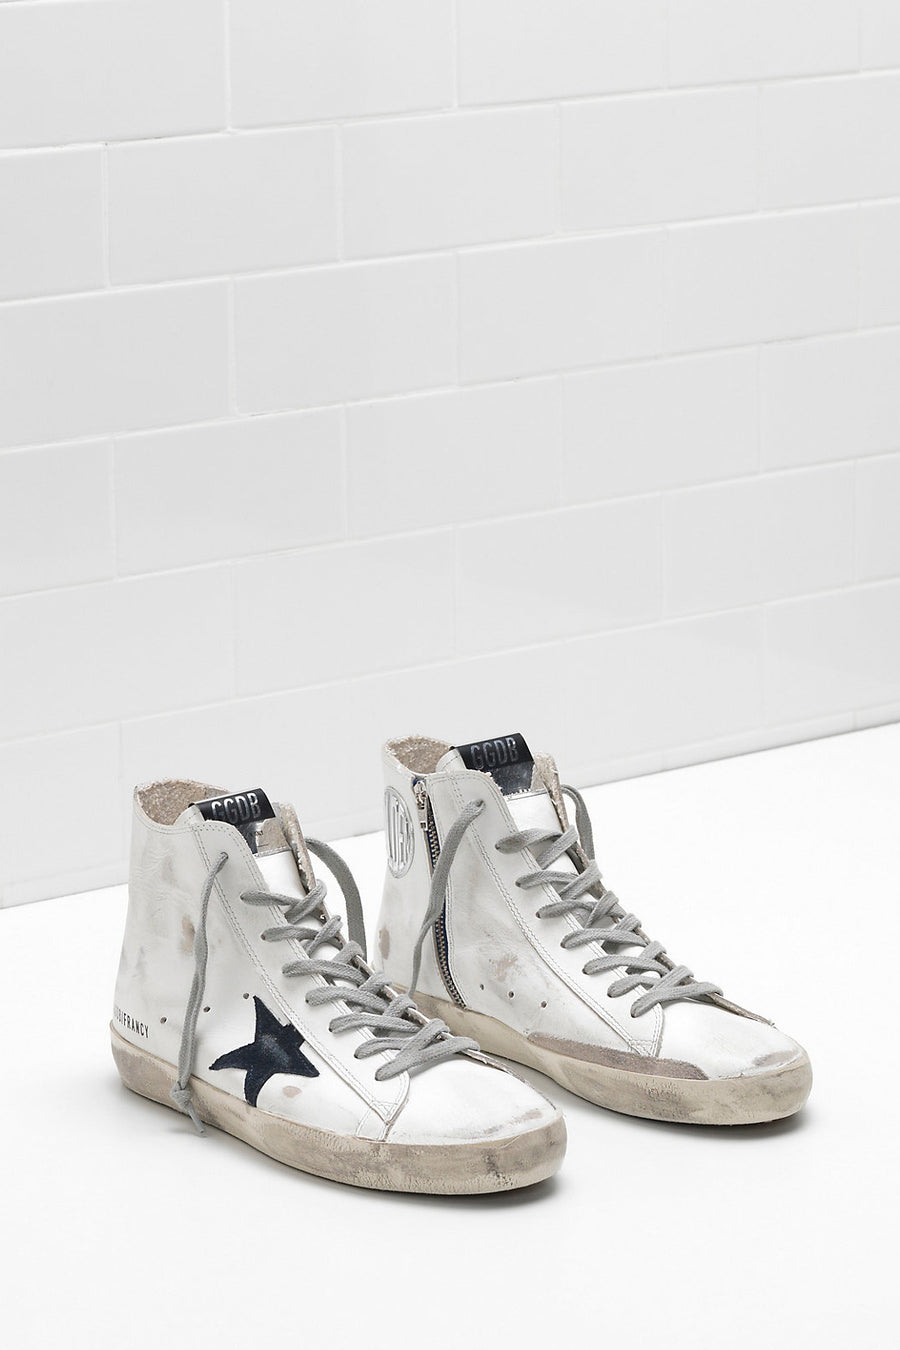 Francy Sneakers - White Bluette Zip - Pavilion